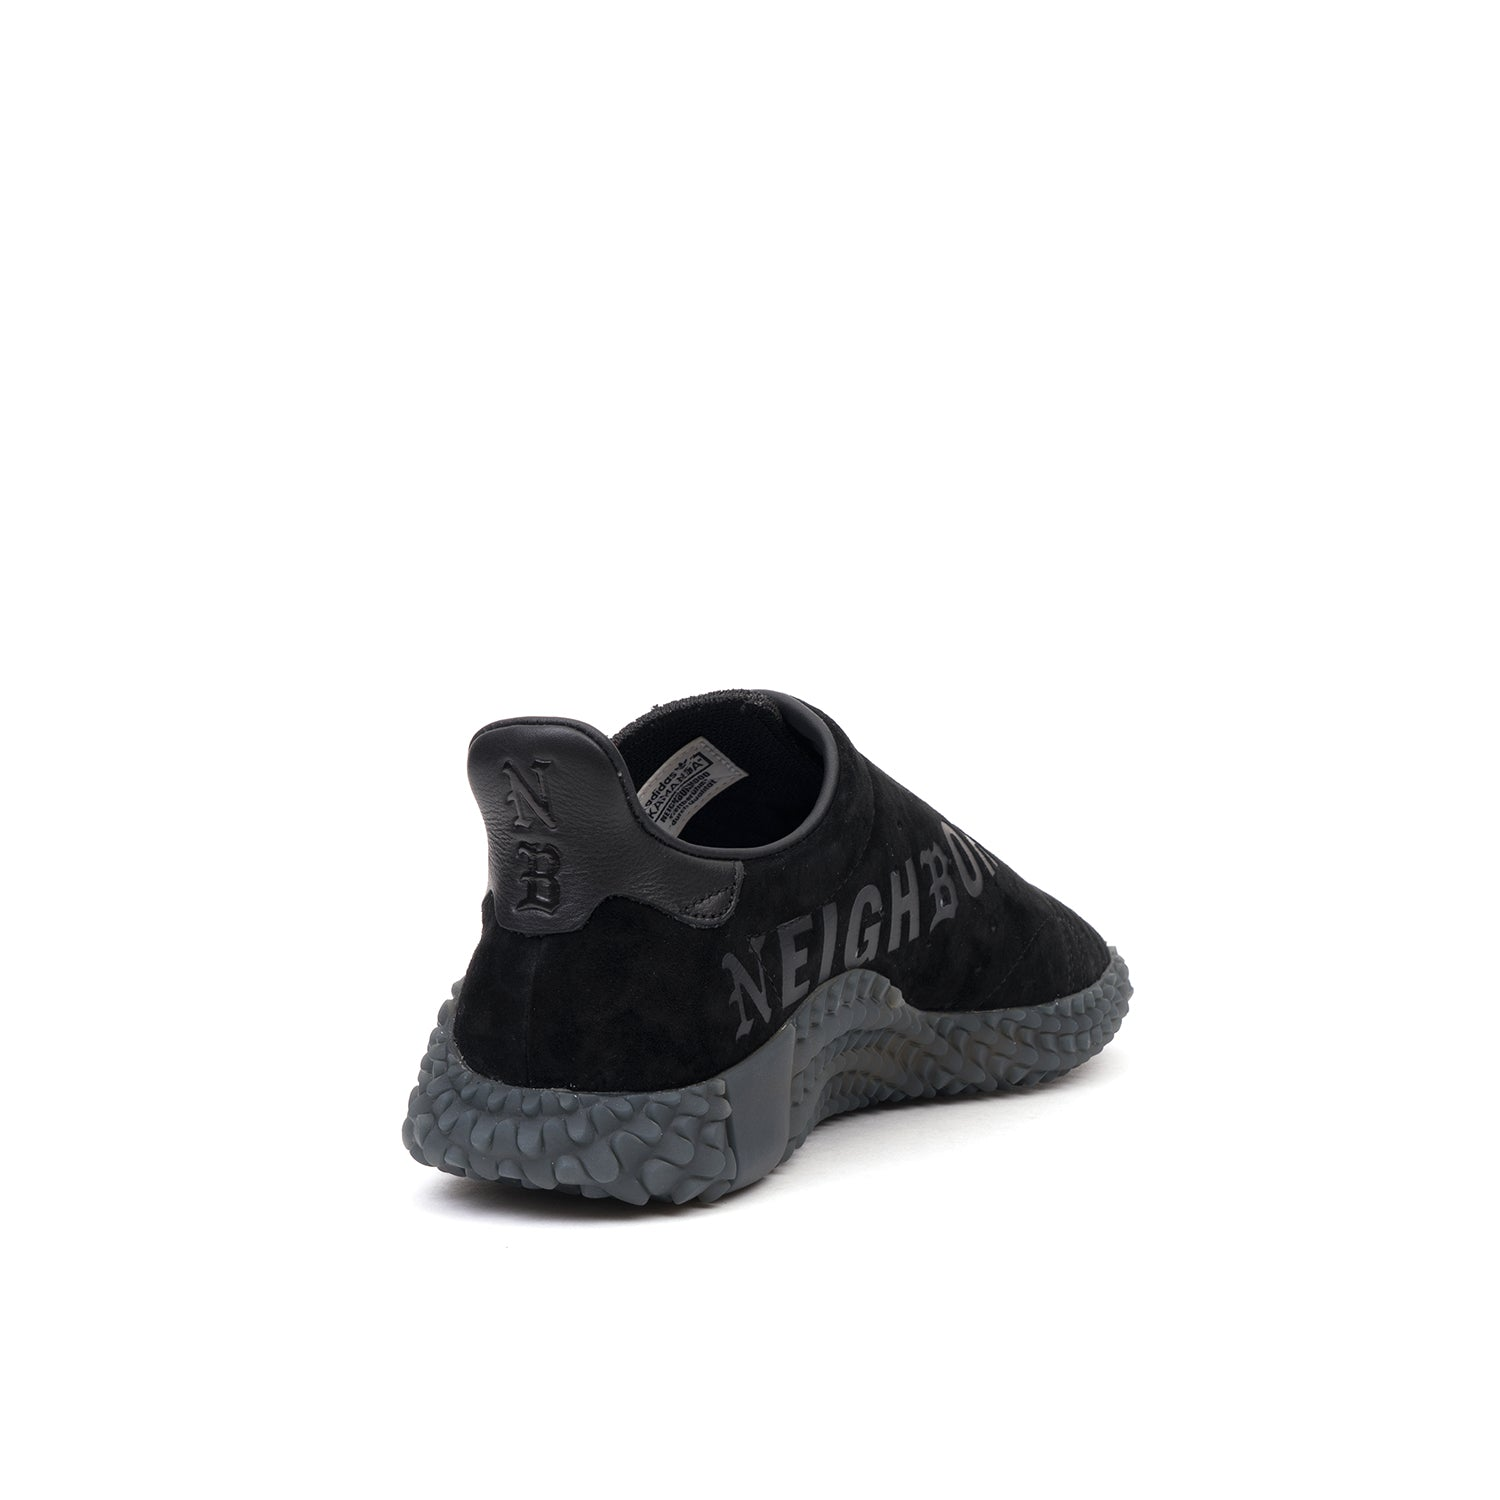 arrives 72f4a db0a4 adidas Originals x NEIGHBORHOOD Kamanda 01 NBHD Black